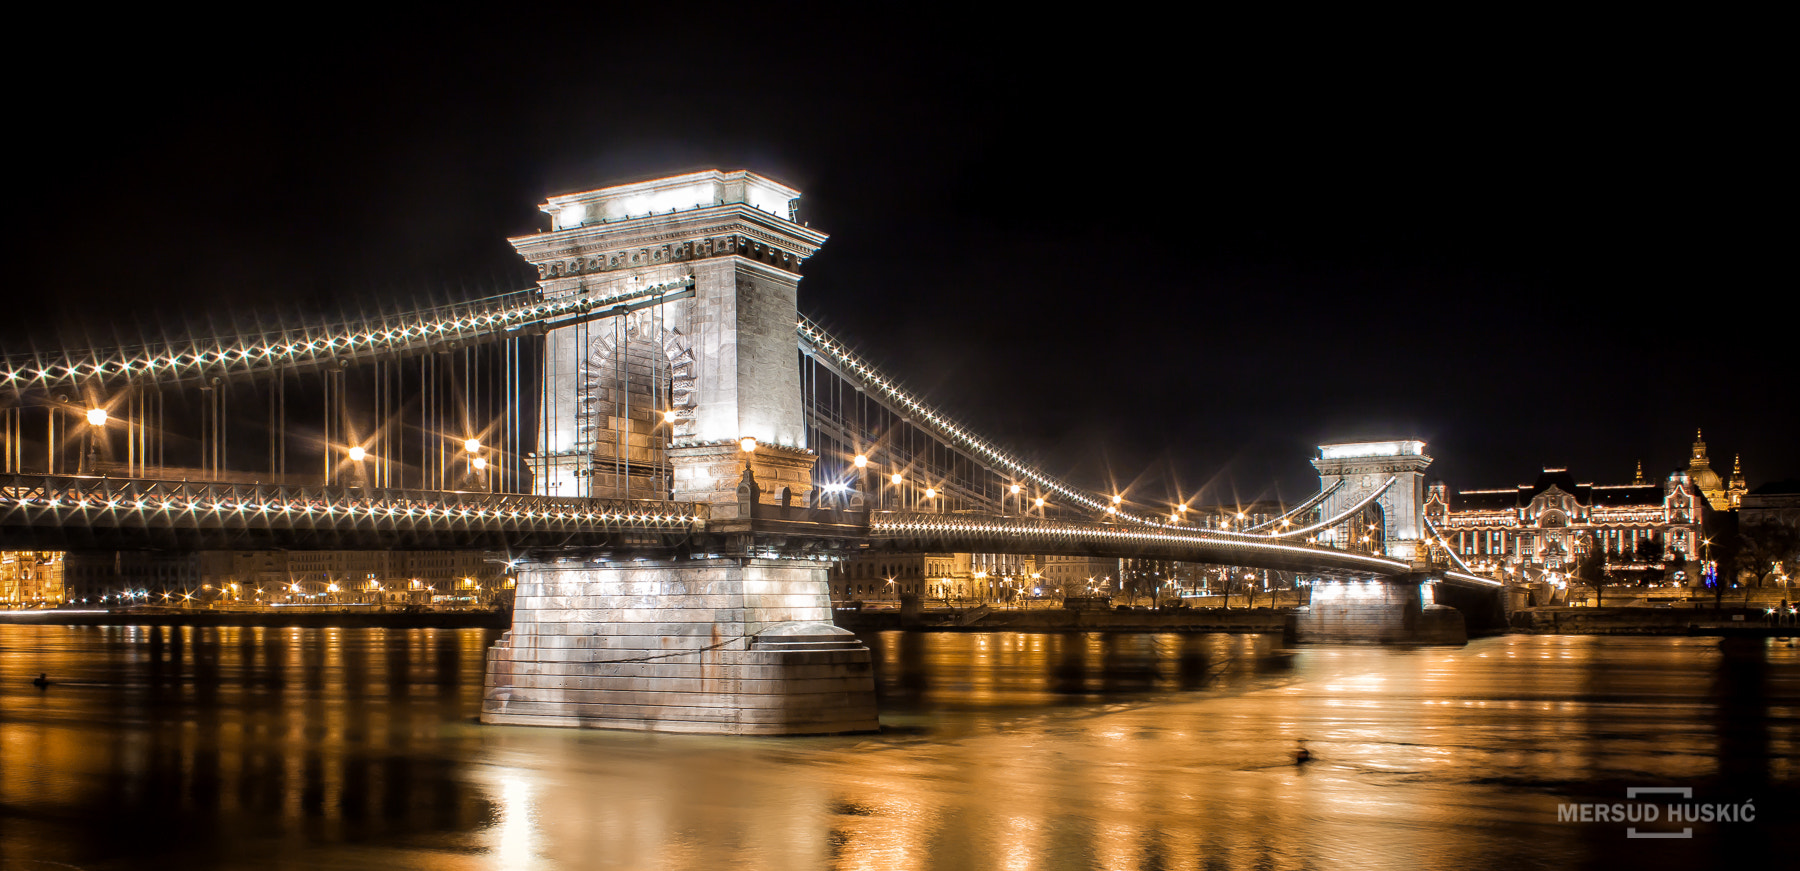 Photograph Budapest - Széchenyi Chain Bridge by Mersud Huskic on 500px